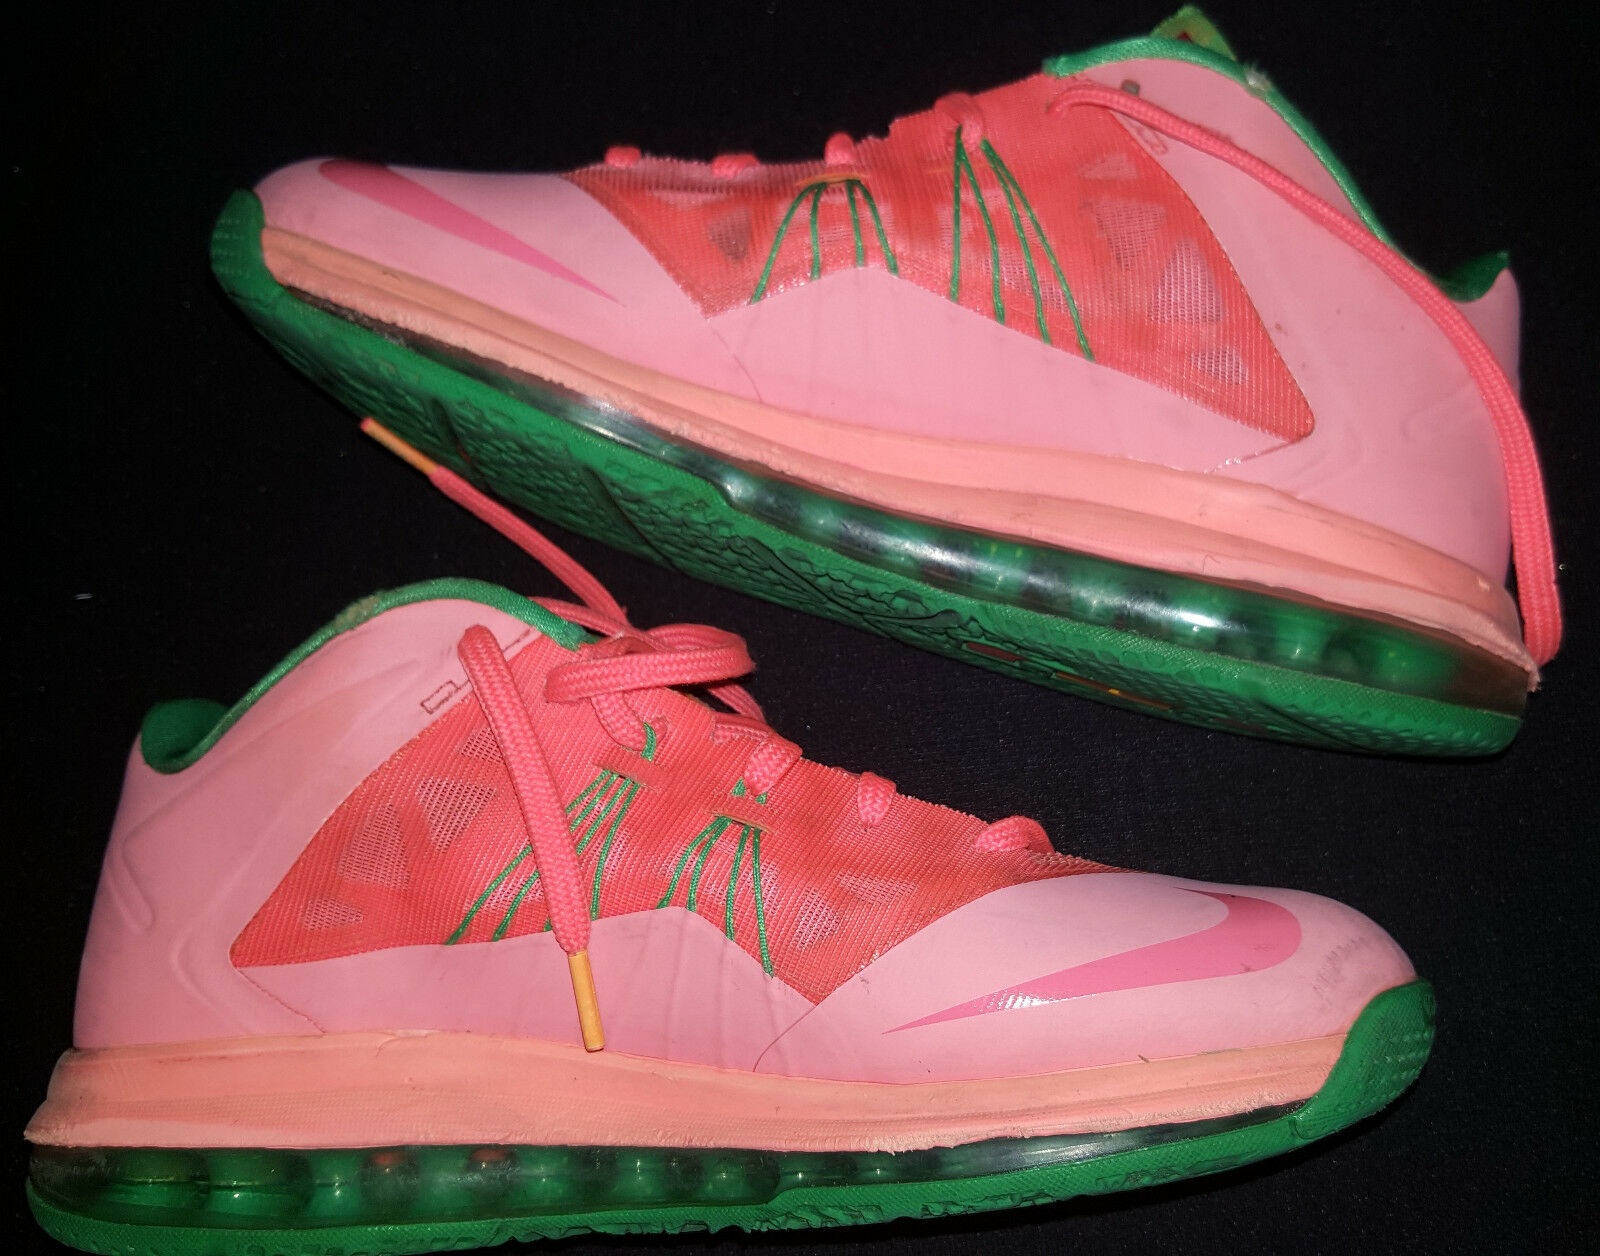 LEBRON JAMES NIKE Mens Sneakers Shoes 2018 X LOW Watermelon Orange Size 8